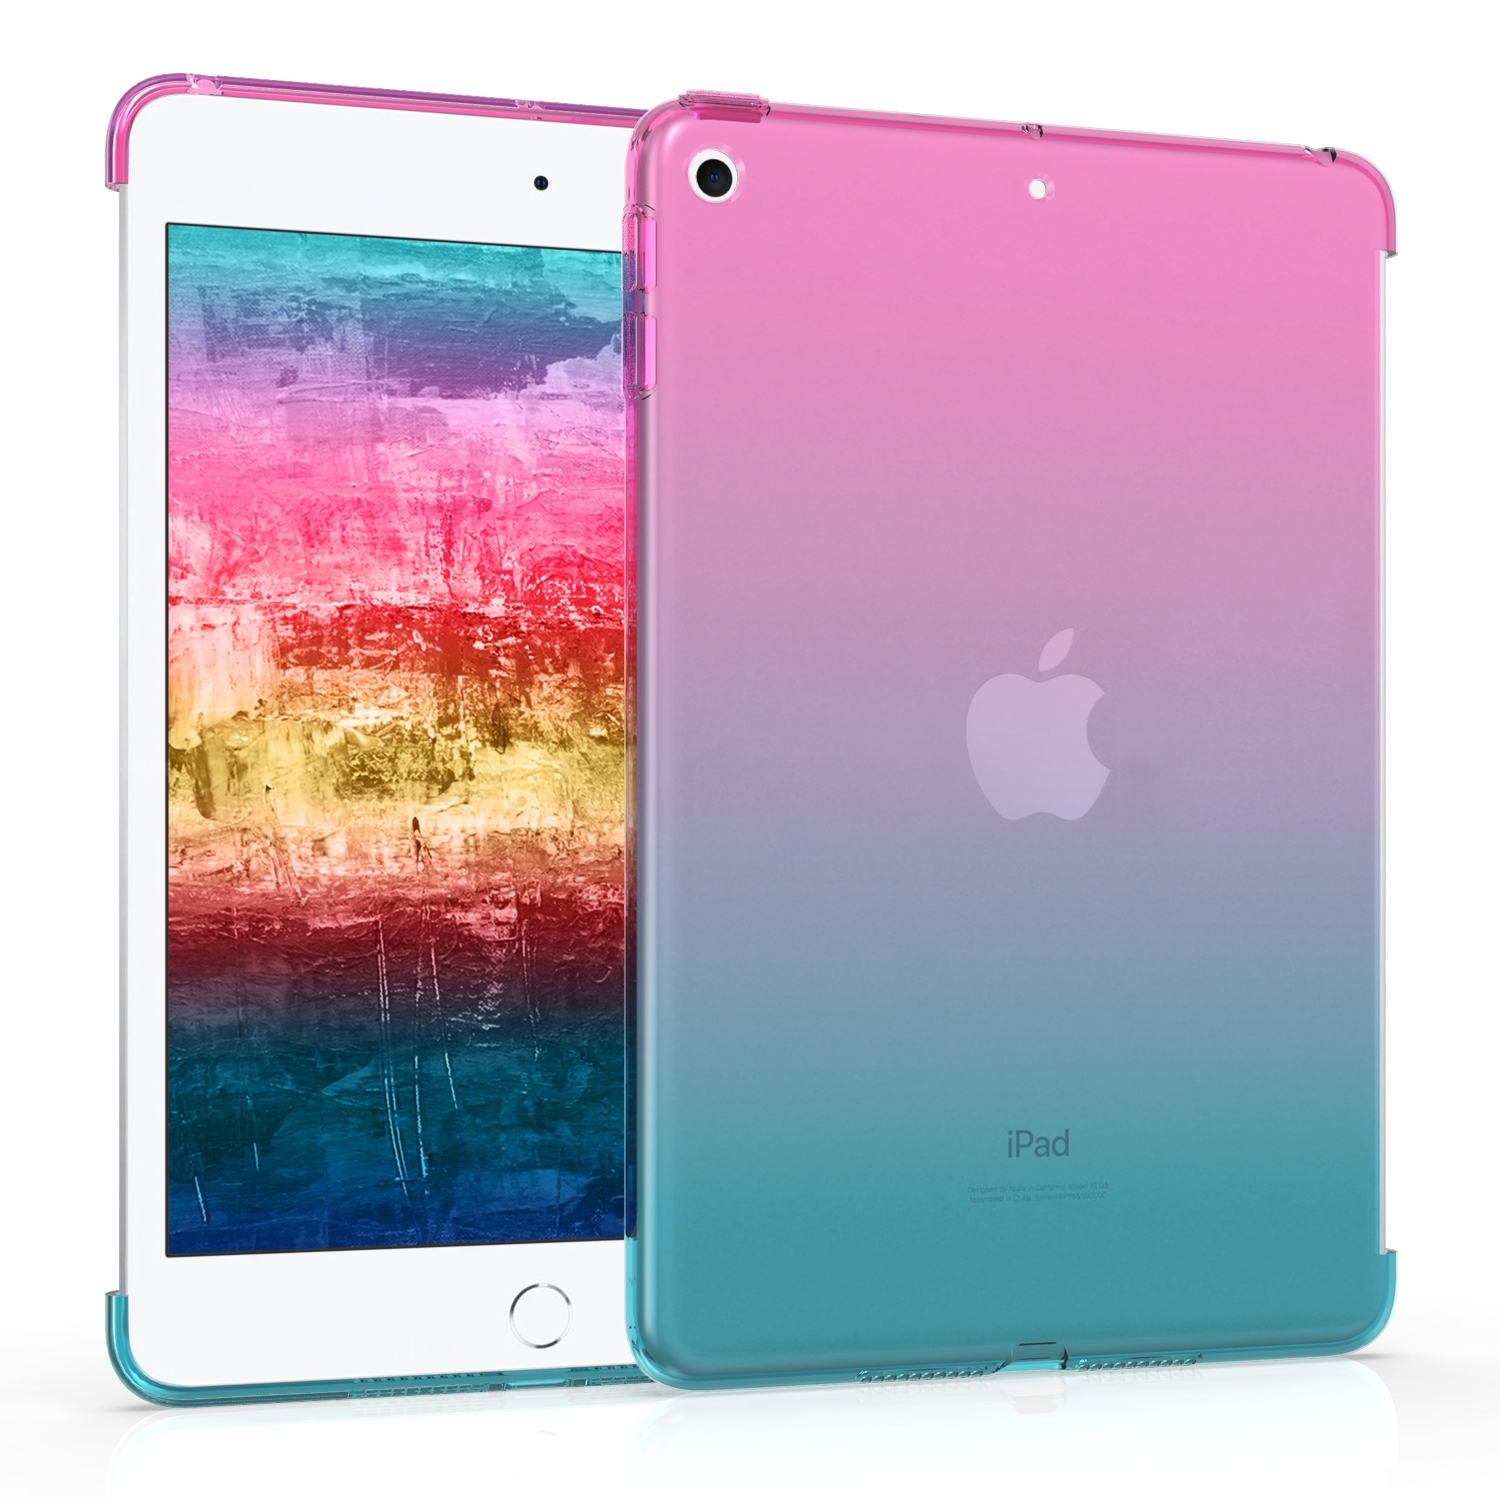 KW Θήκη Σιλικόνης Apple iPad Mini 5 2019 - TPU Smart Cover Compatible Tablet Cover - Dark Pink / Blue / Transparent (50106.01)